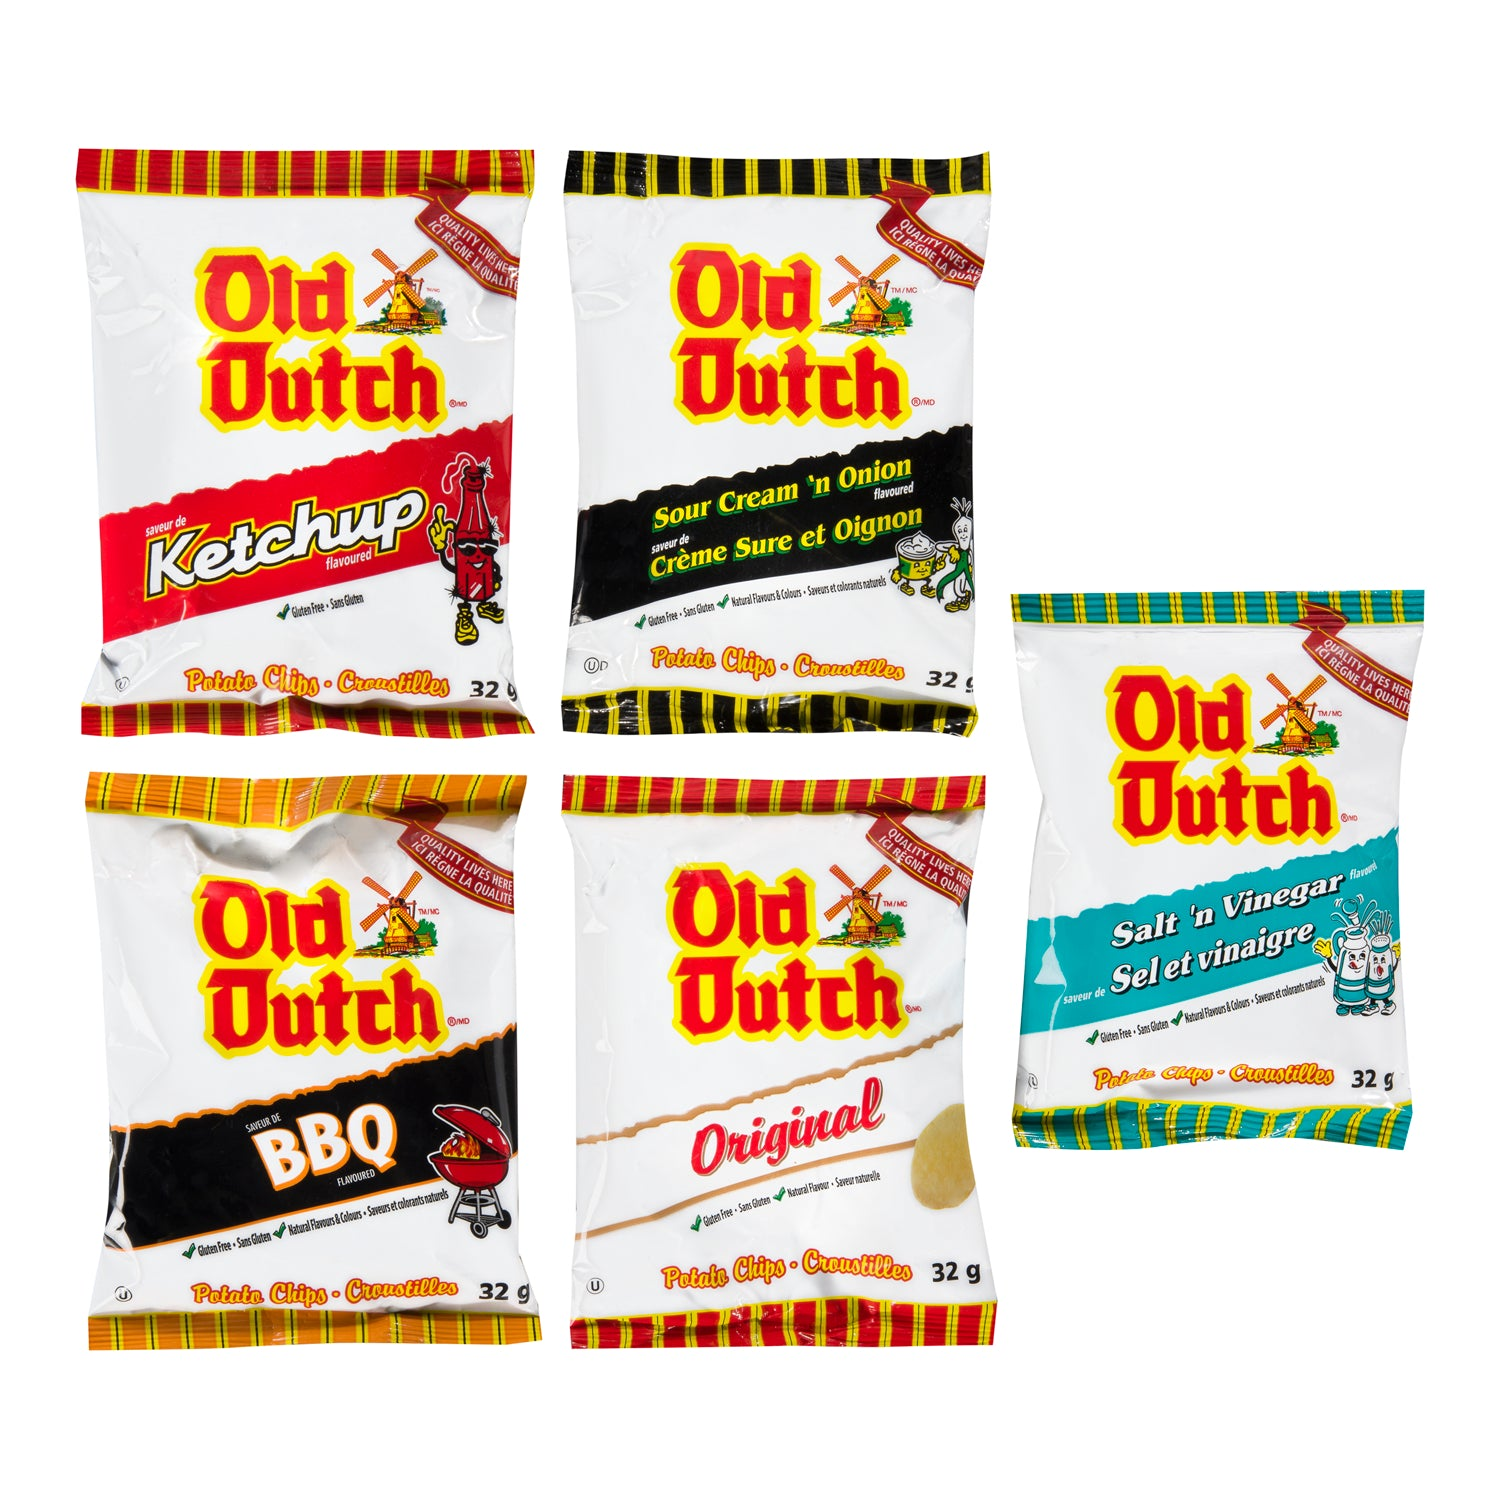 Old Dutch Assorted Potato Chips 32 g - 30 Pack [$0.47/each]